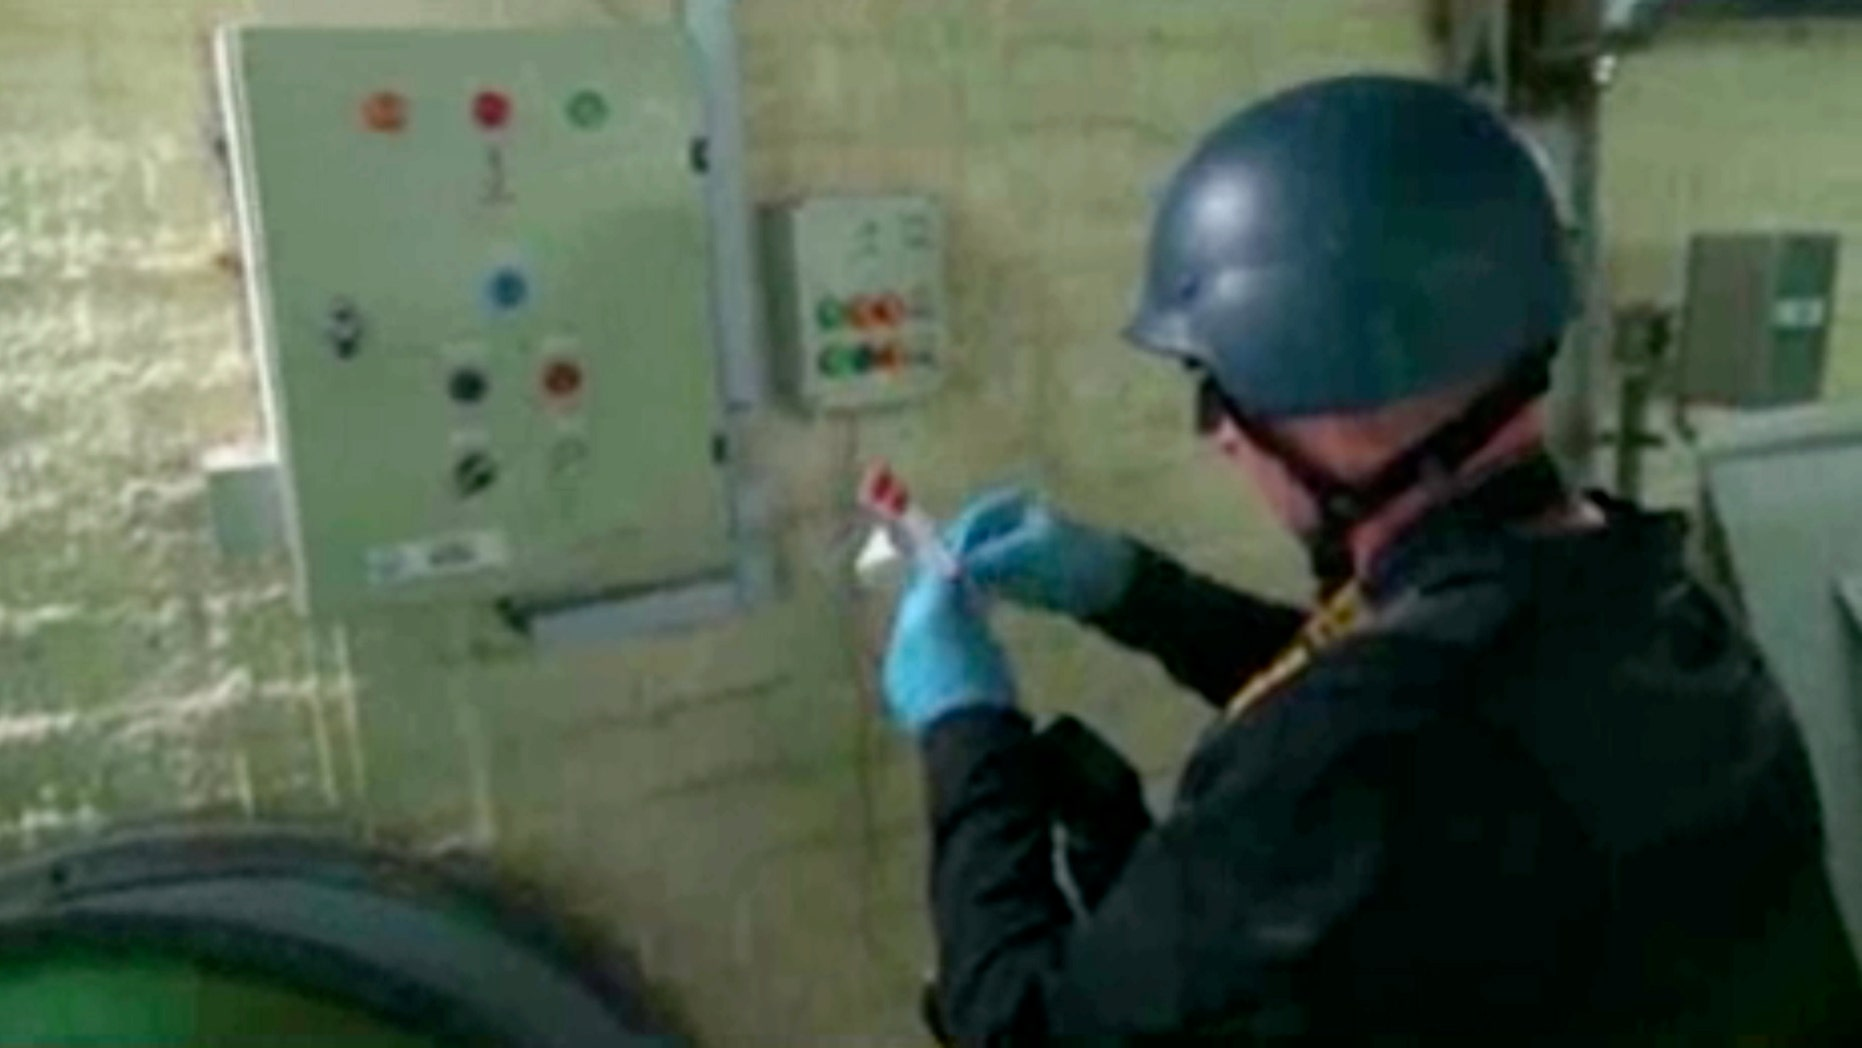 Oct. 8, 2013 - FILE image made from video broadcast on Syrian State Television shows a chemical weapons expert taking samples at a chemical weapons plant at an unknown location in Syria. The dismantling of Syria's chemical weapons stockpile is under way, but the mission faces multiple challenges.